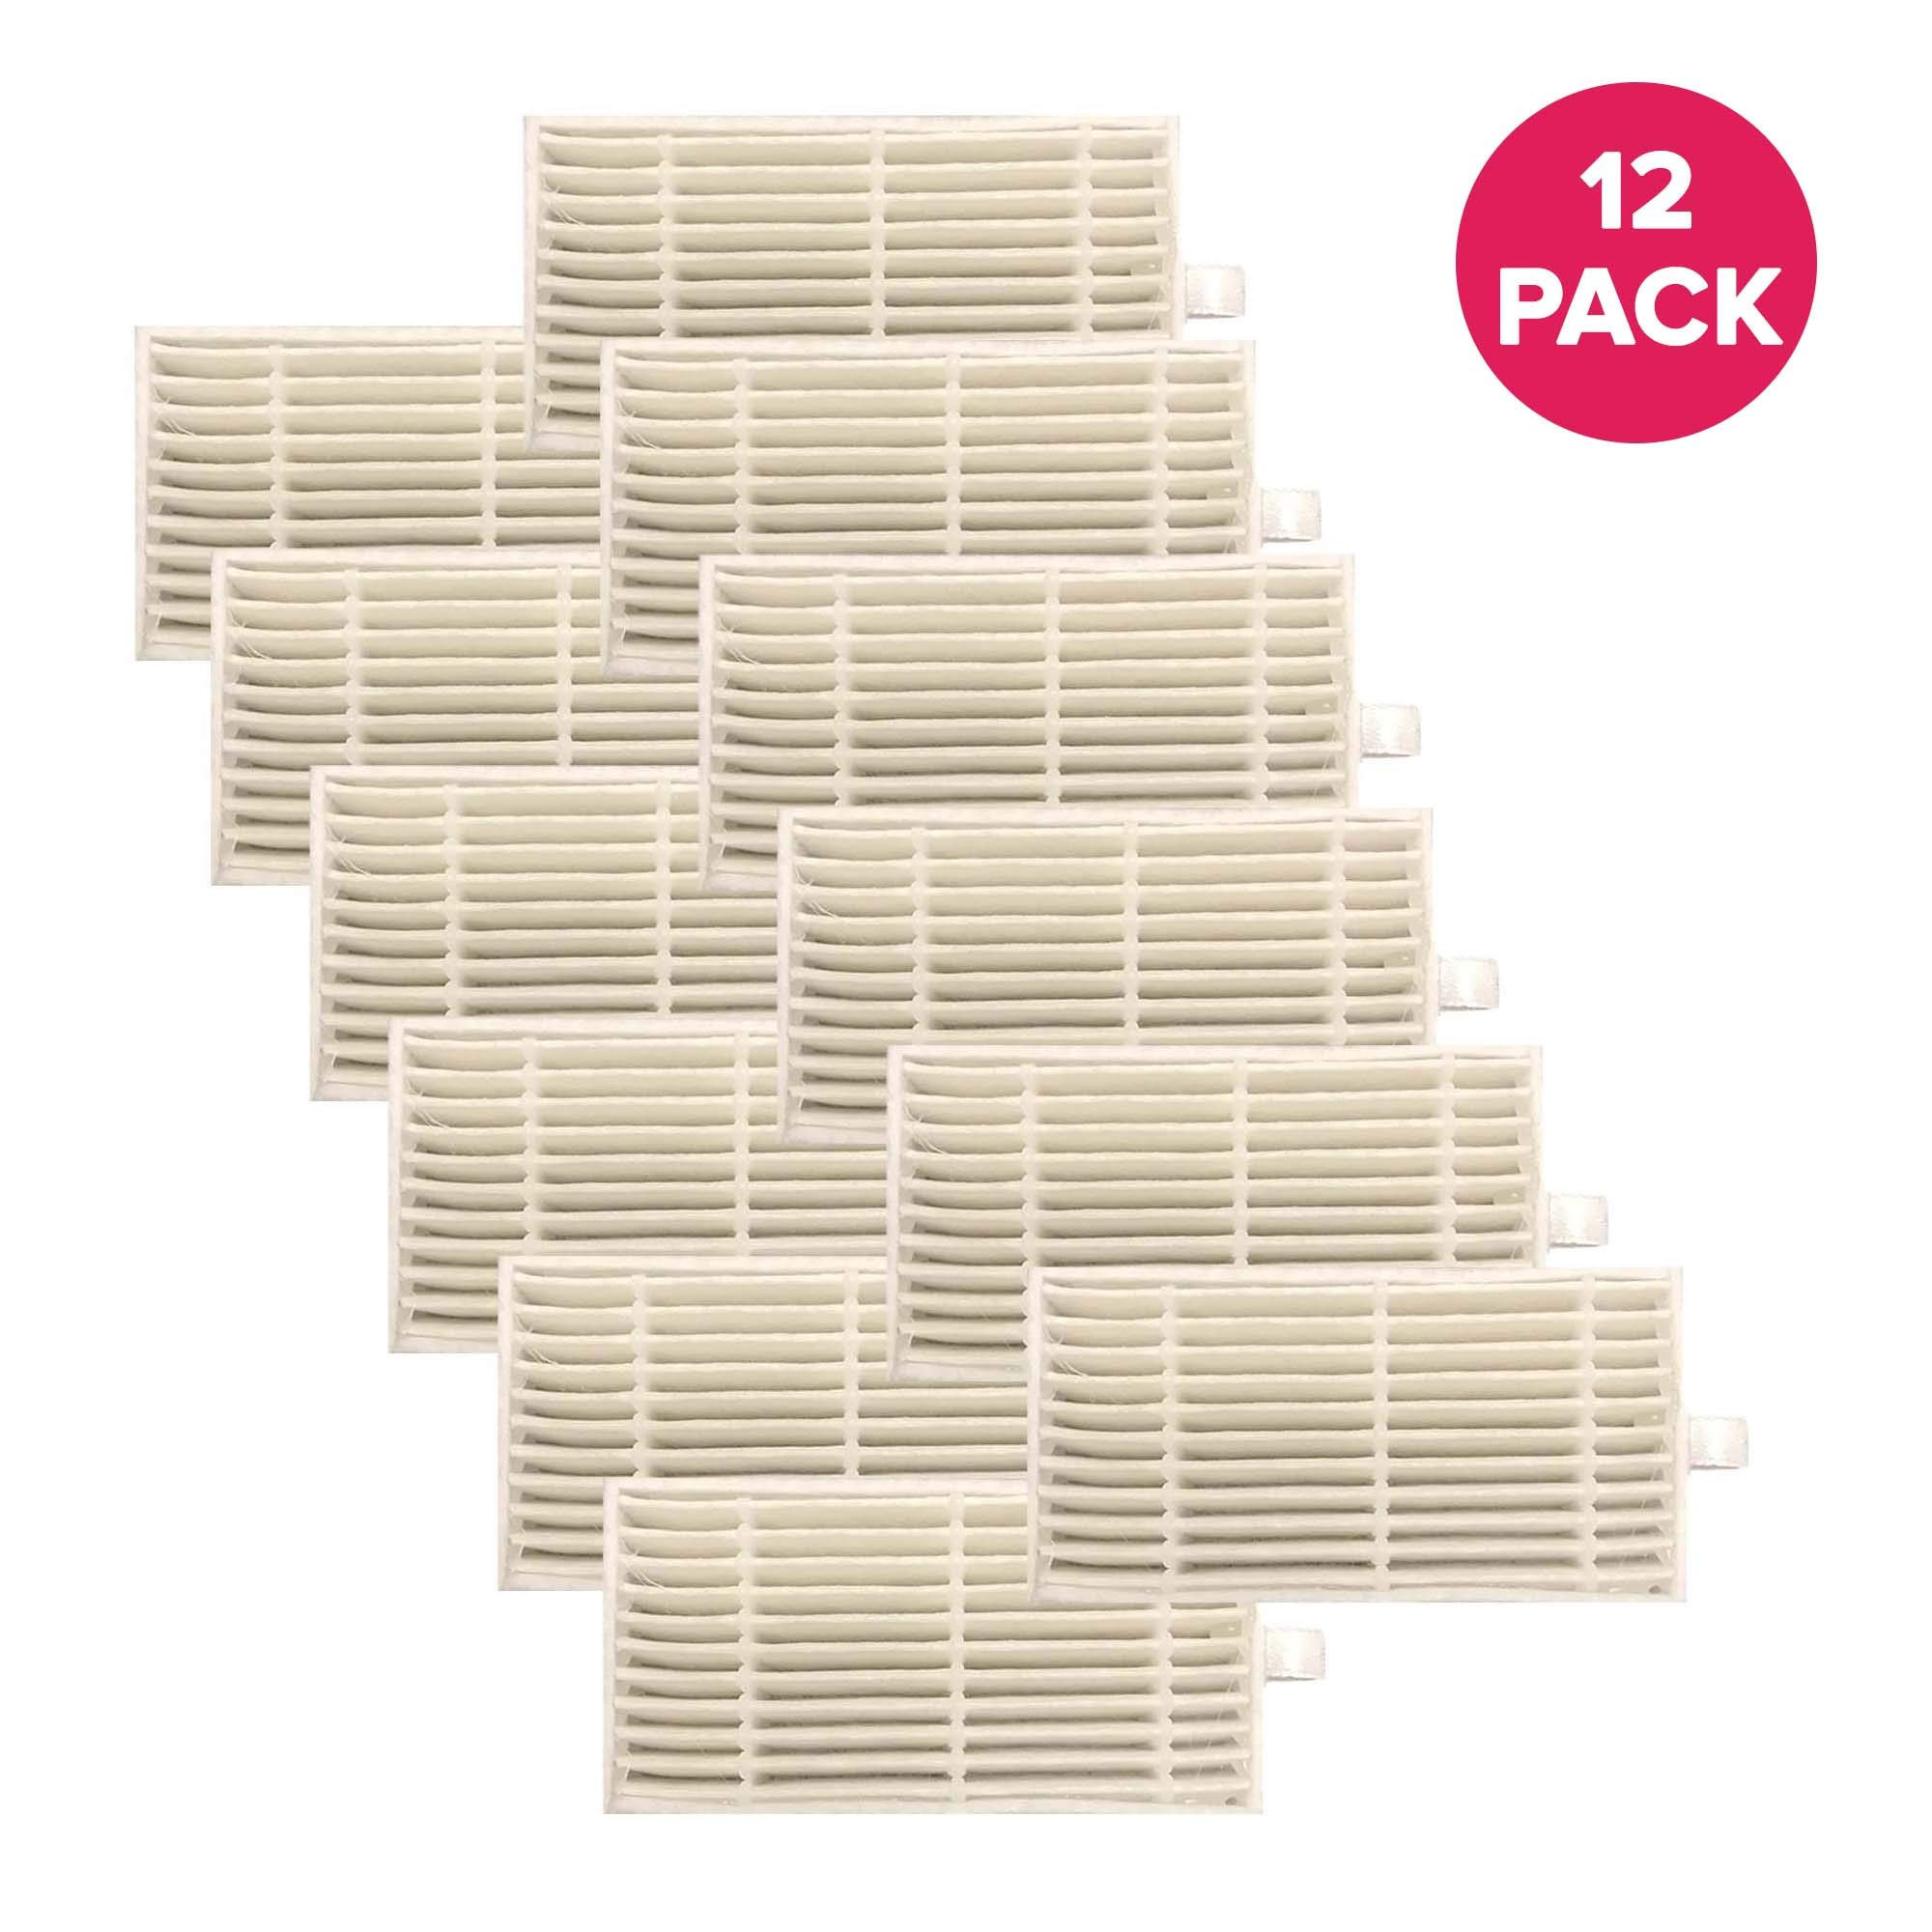 Think Crucial 2 Replacements for iLife Filters, Compatible with V3s, V3s Pro, V5, V5s & V5s Pro Robot Vacuum Cleaners (12 Pack) by Think Crucial